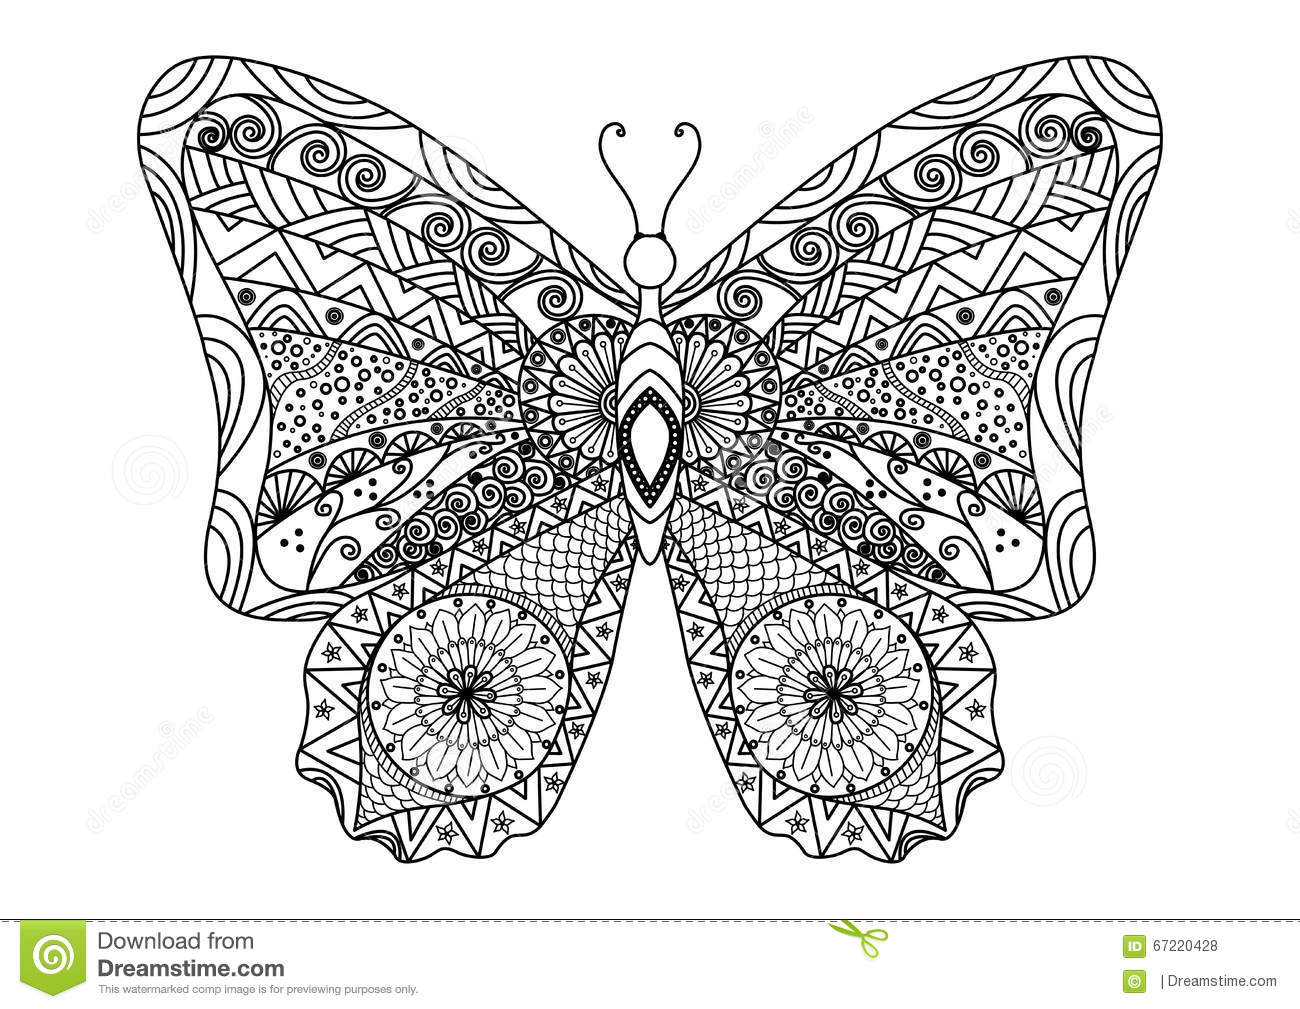 Mandalas De Animales Para Pintar Abstracto Pintar Tattoo: Hand Drawn Butterfly Zentangle Style For Coloring Book